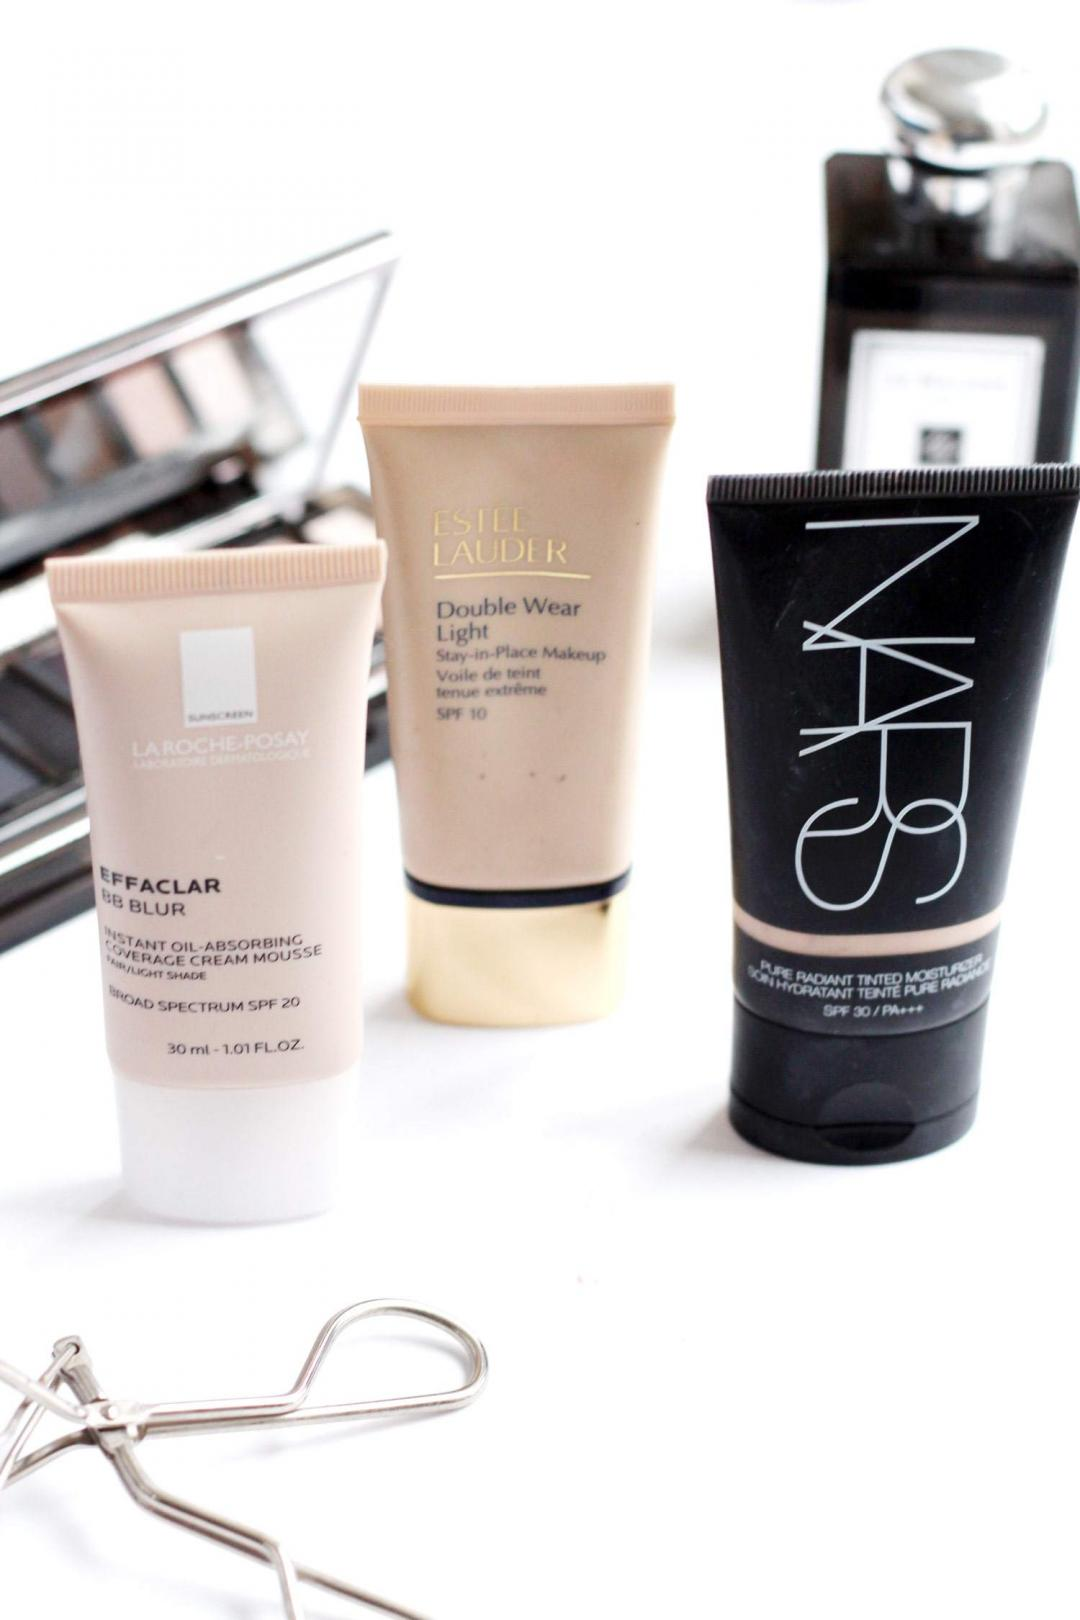 three-light-bases-NARS-tinted-moisturiser-la-roche-posay-effaclar-blue-estee-lauder-double-wear-light